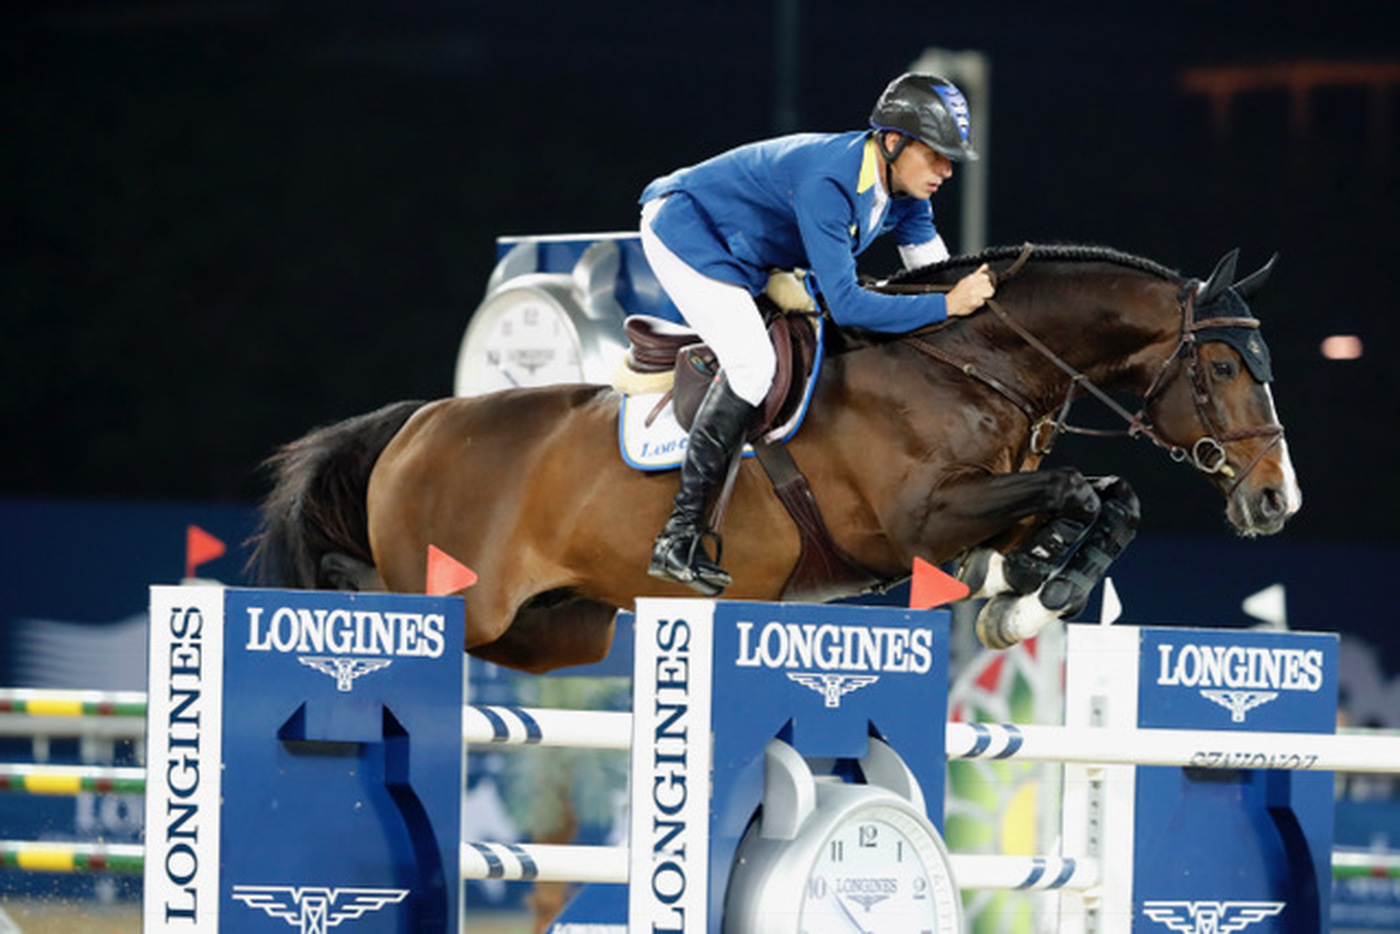 Longines Show Jumping Event: Rolf-Göran Bengtsson won the Longines Global Champions Tour 2016 after a final full of suspense in Doha 4